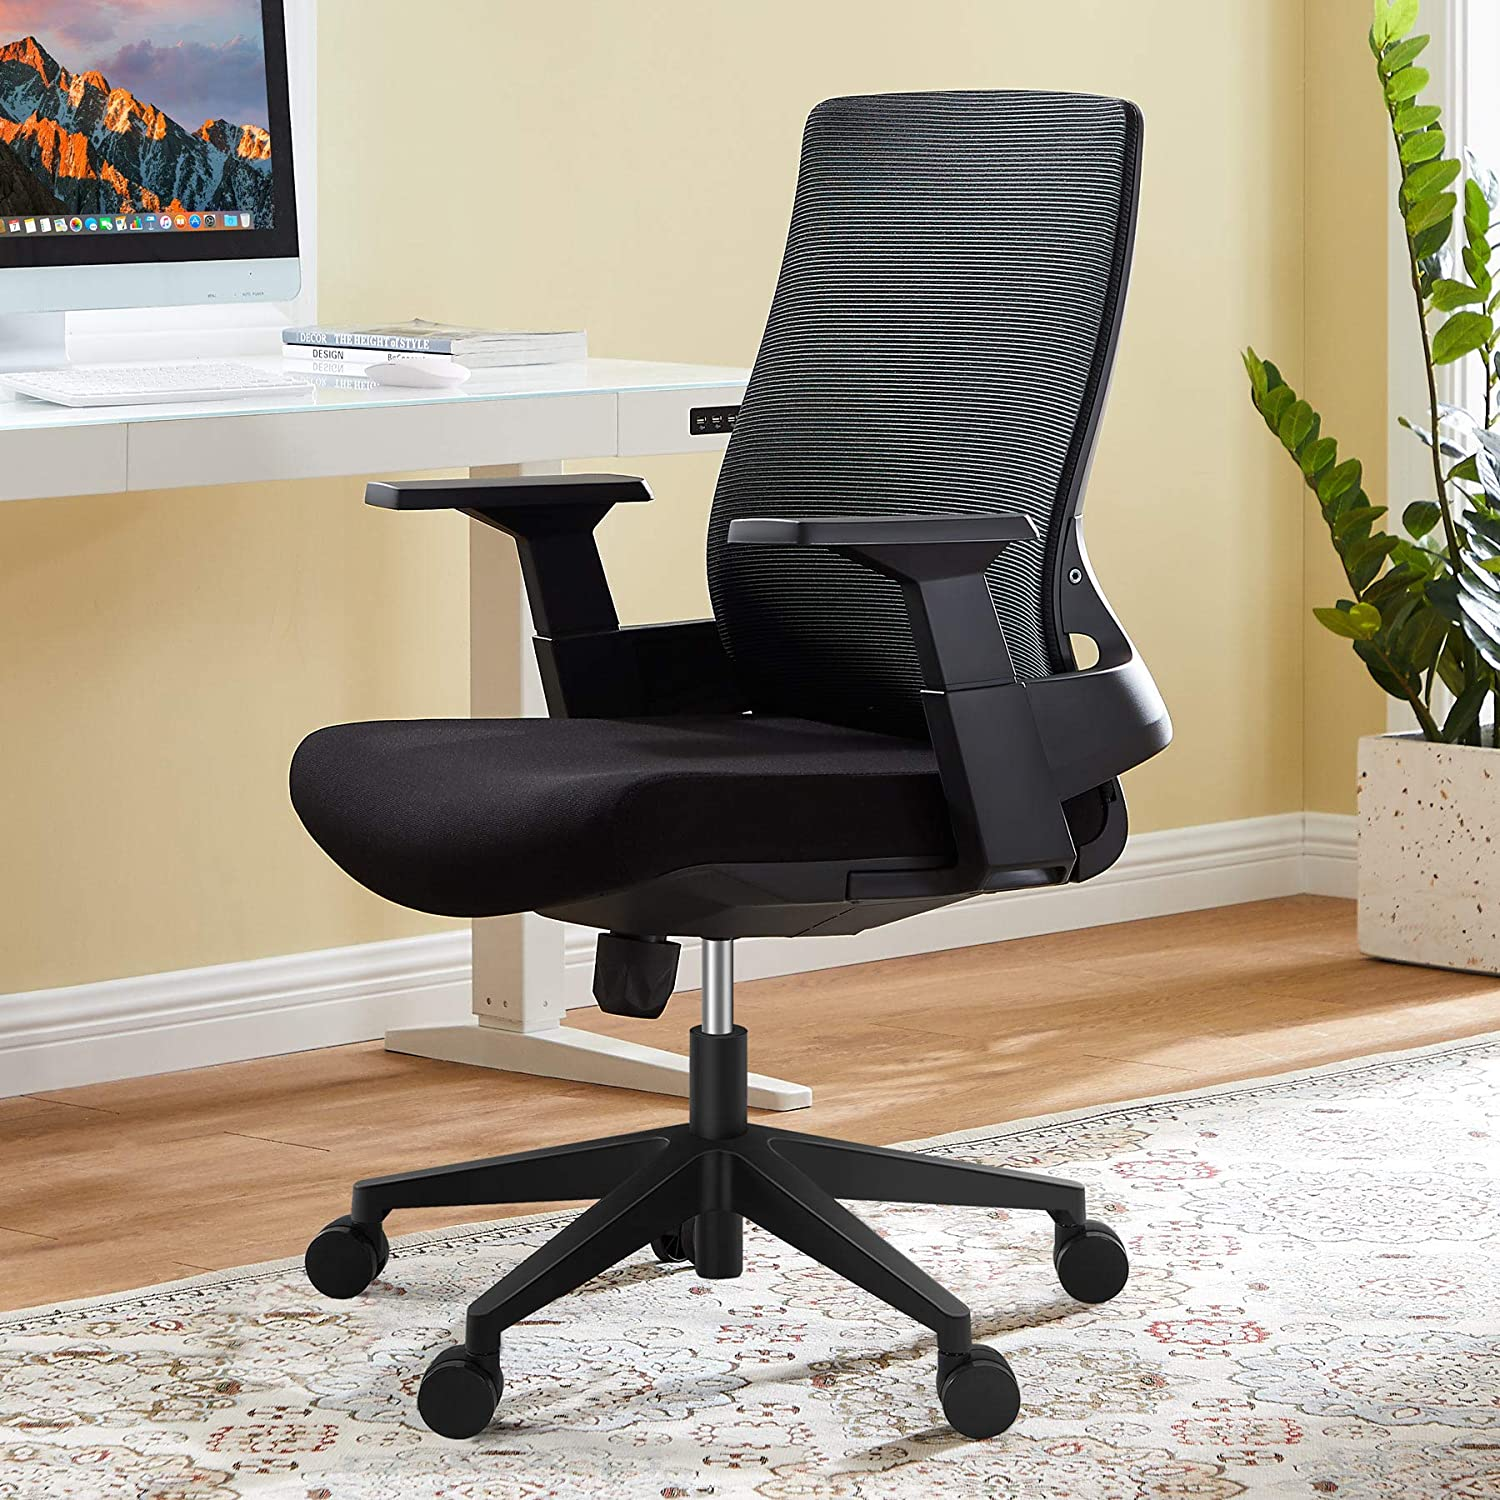 Office Chairs, Ergonomic Office Chair with Lumbar Support, Tribesigns Mid Back Swivel Chair with Breathable Mesh, Thick Seat Cushion, Modern Executive Adjustable Rolling Swivel Chair Home Office